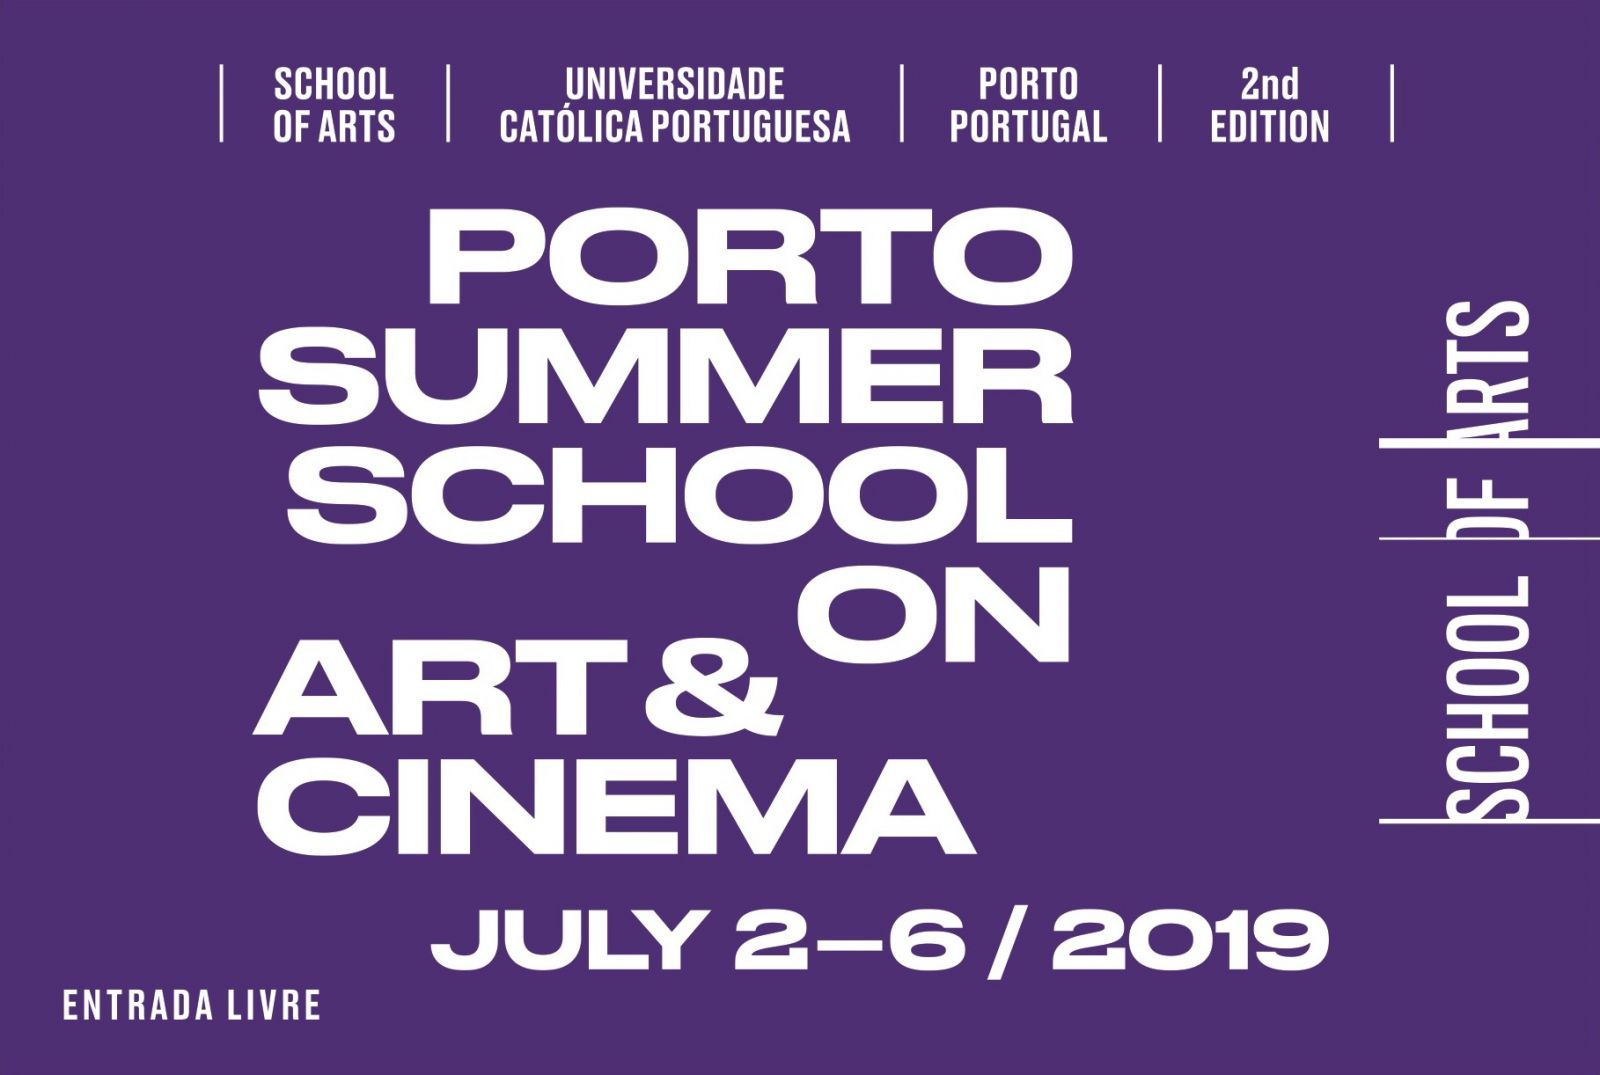 Porto Summer School on Art & Cinema 2019 · 2nd Edition